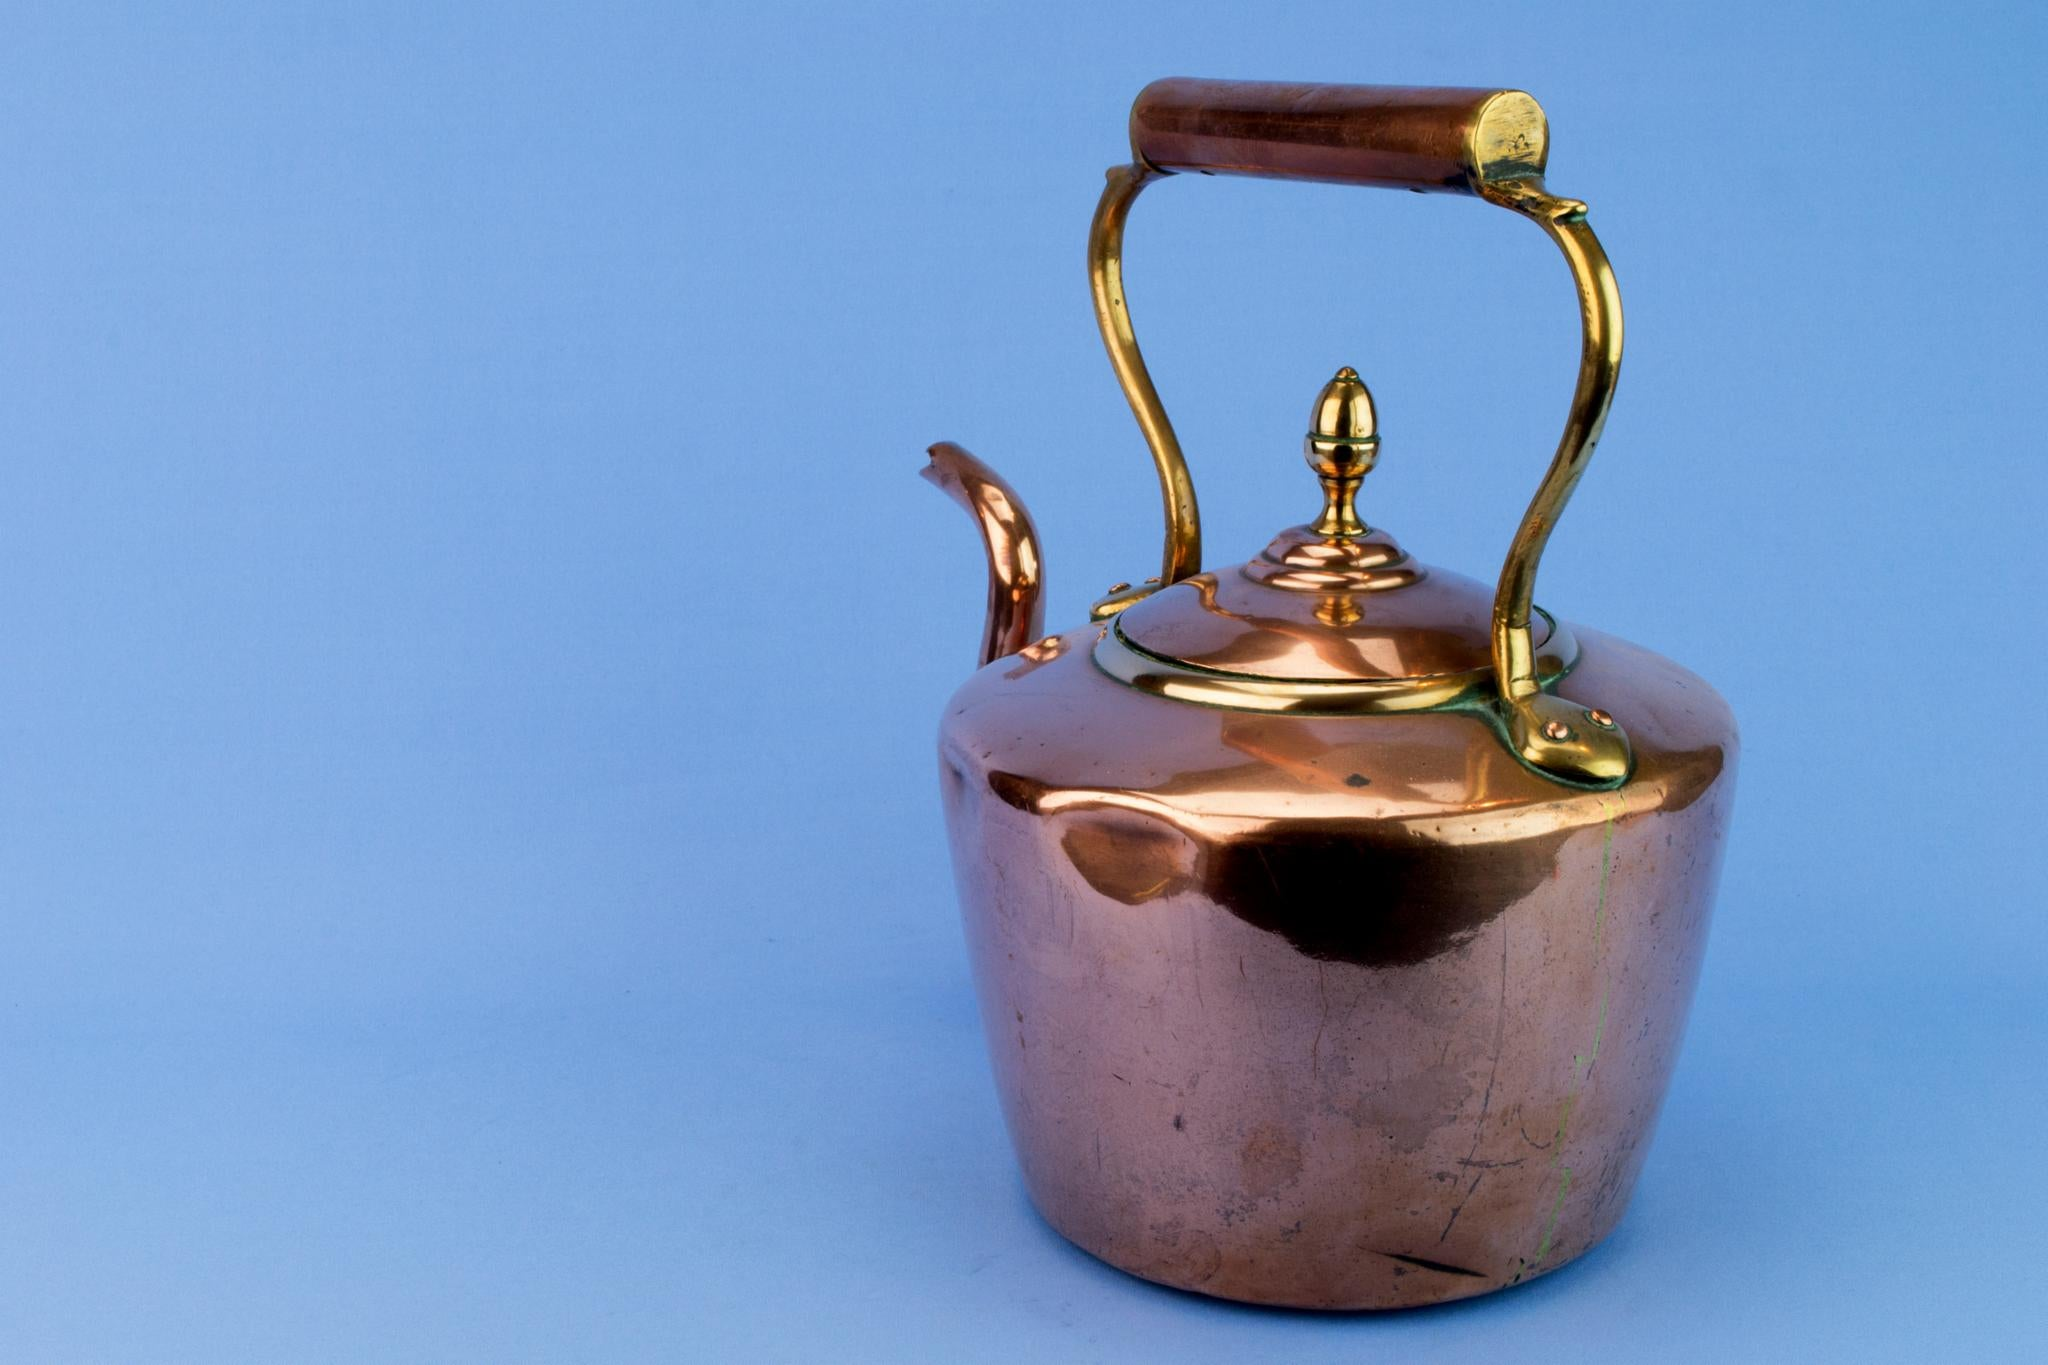 Polished Copper Stove Kettle, English 1870s